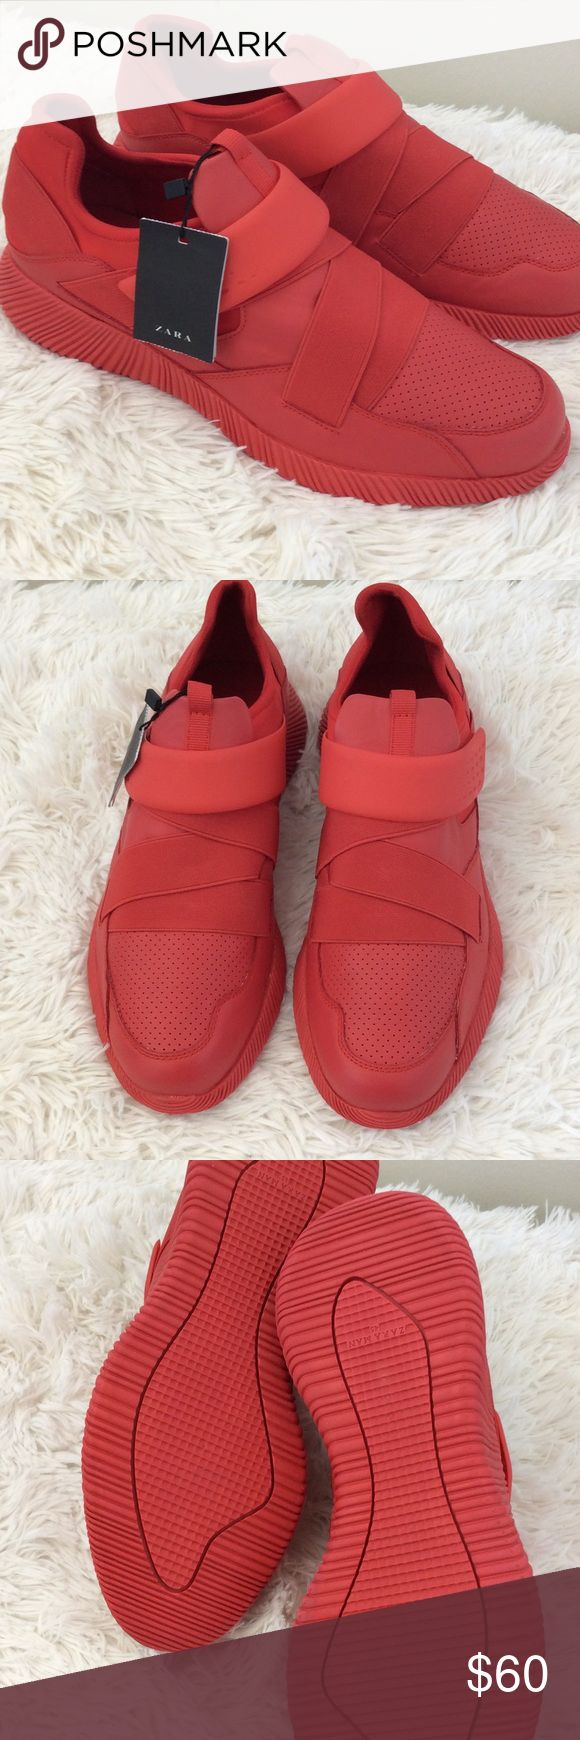 Zara Man Sneakers, Size 45 Trendy red men's synthetic cross trainers. Like new, worn once for photo shoot. Zara Shoes Sneakers - mens shoes dress, mens shoes in usa, leather mens shoes